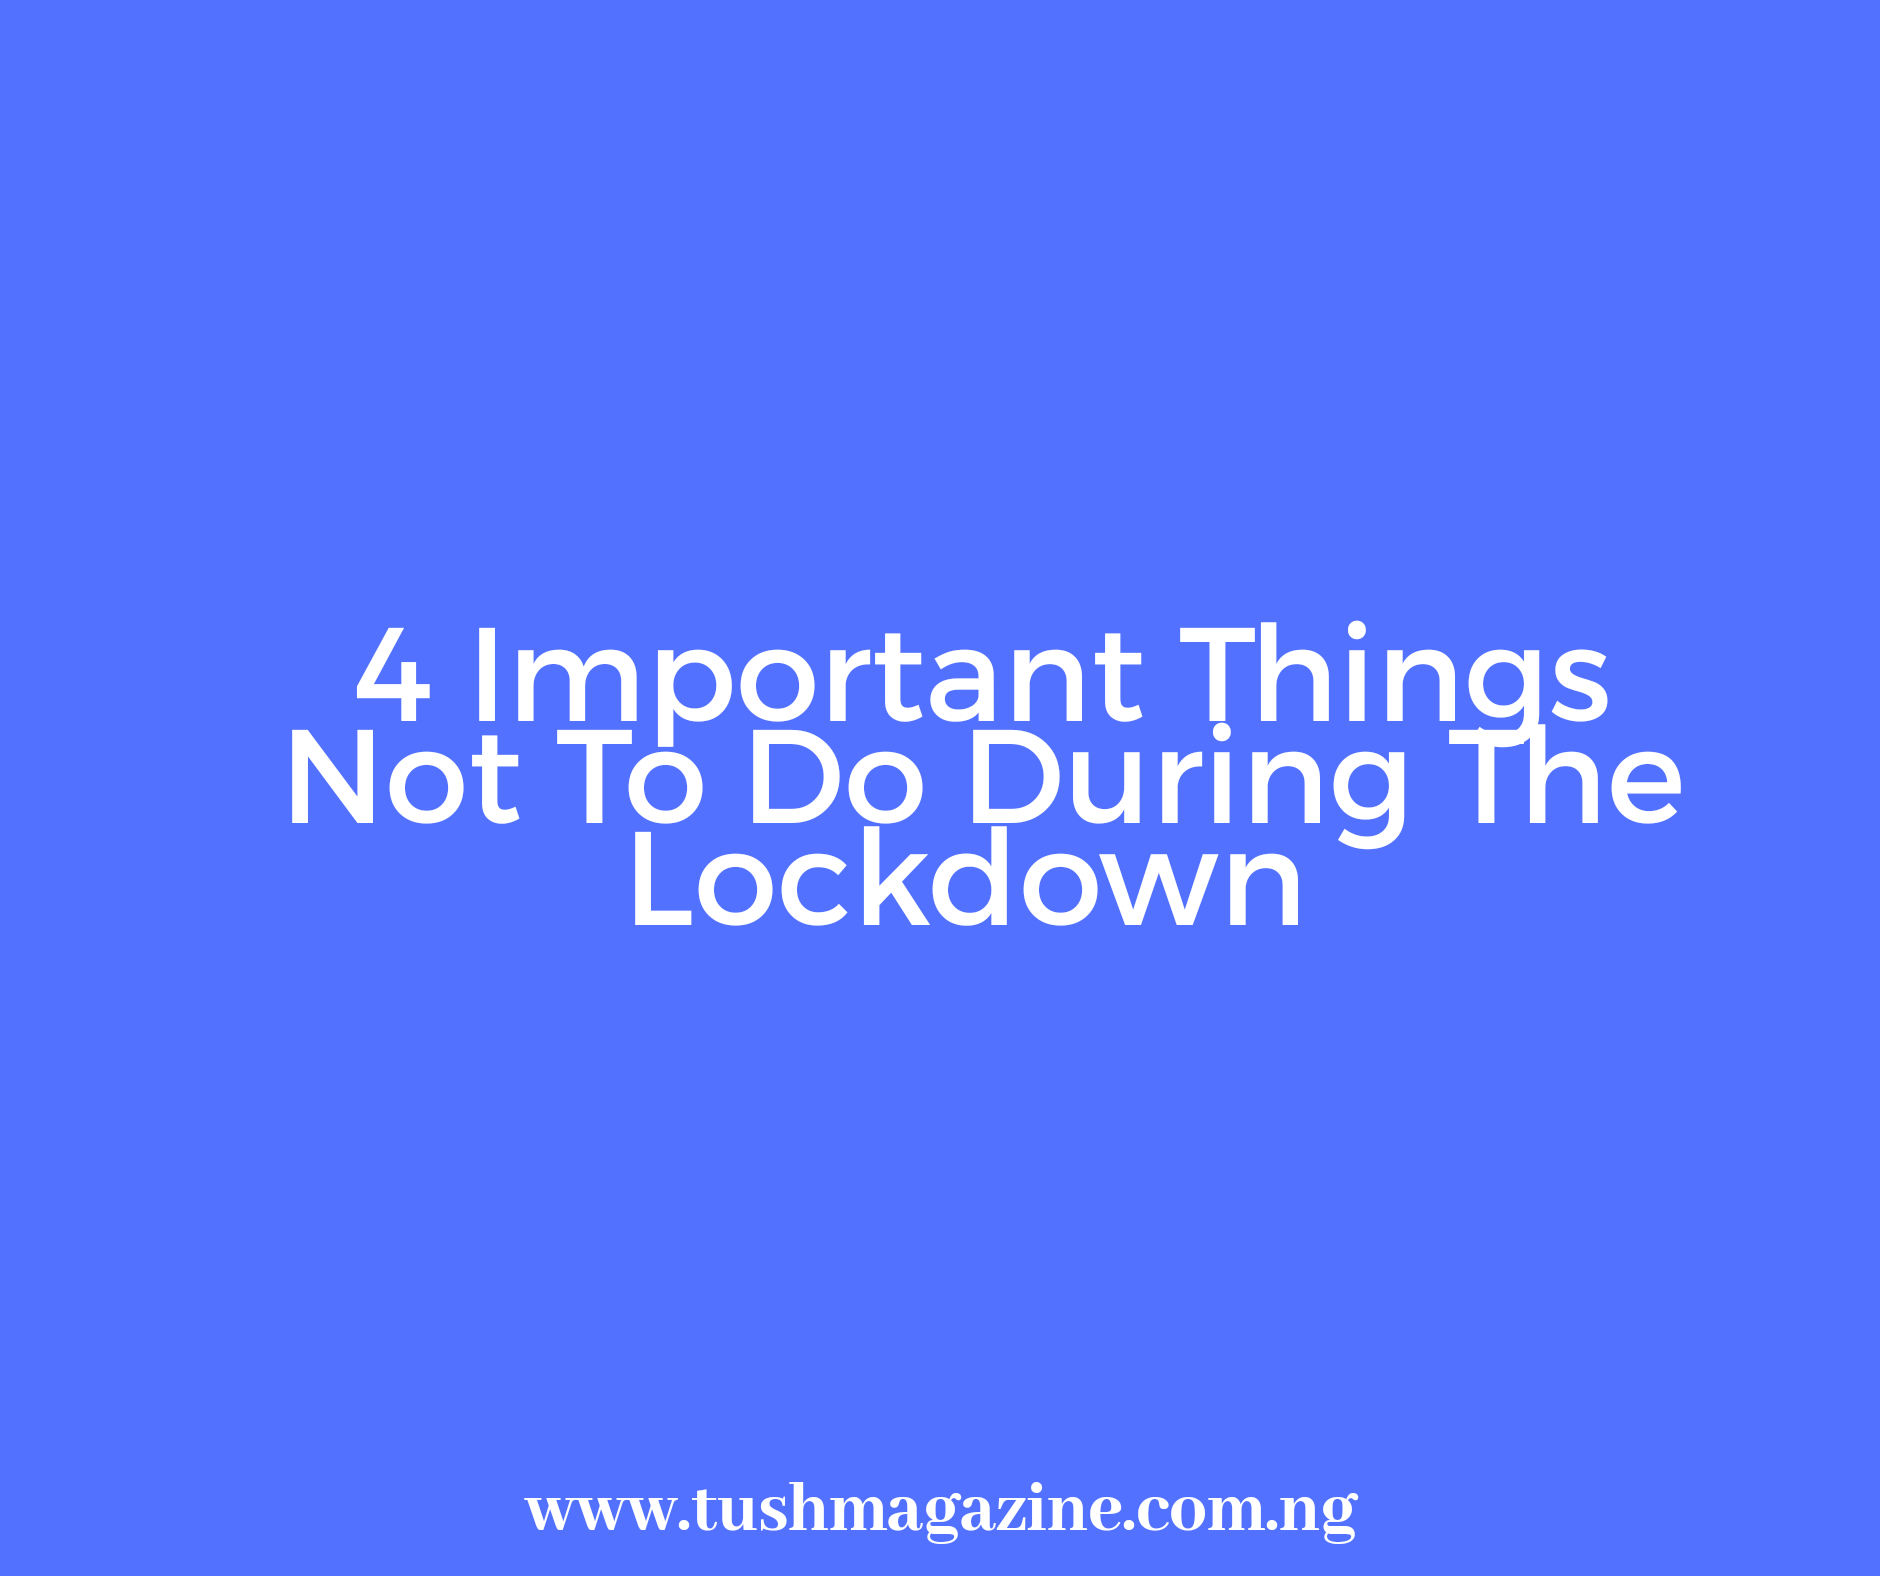 Covid-19: What Not To Do During The Lockdown